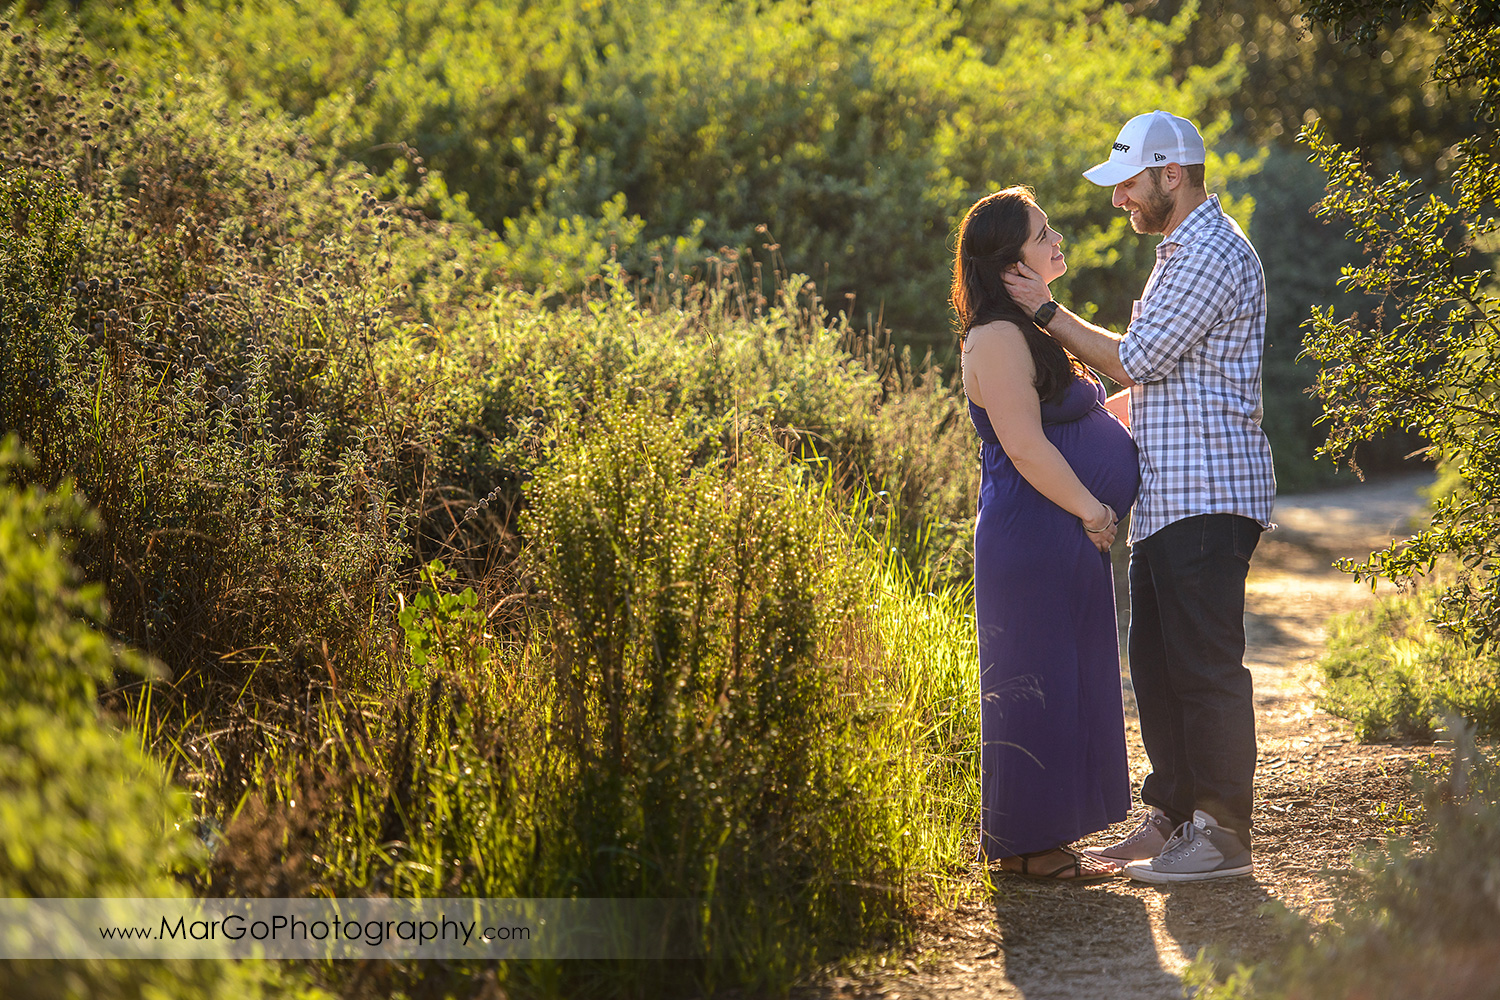 man in checkered shirt and pregnant woman in long violet dress looking at each other during maternity session at Ulistac Natural Area in Santa Clara